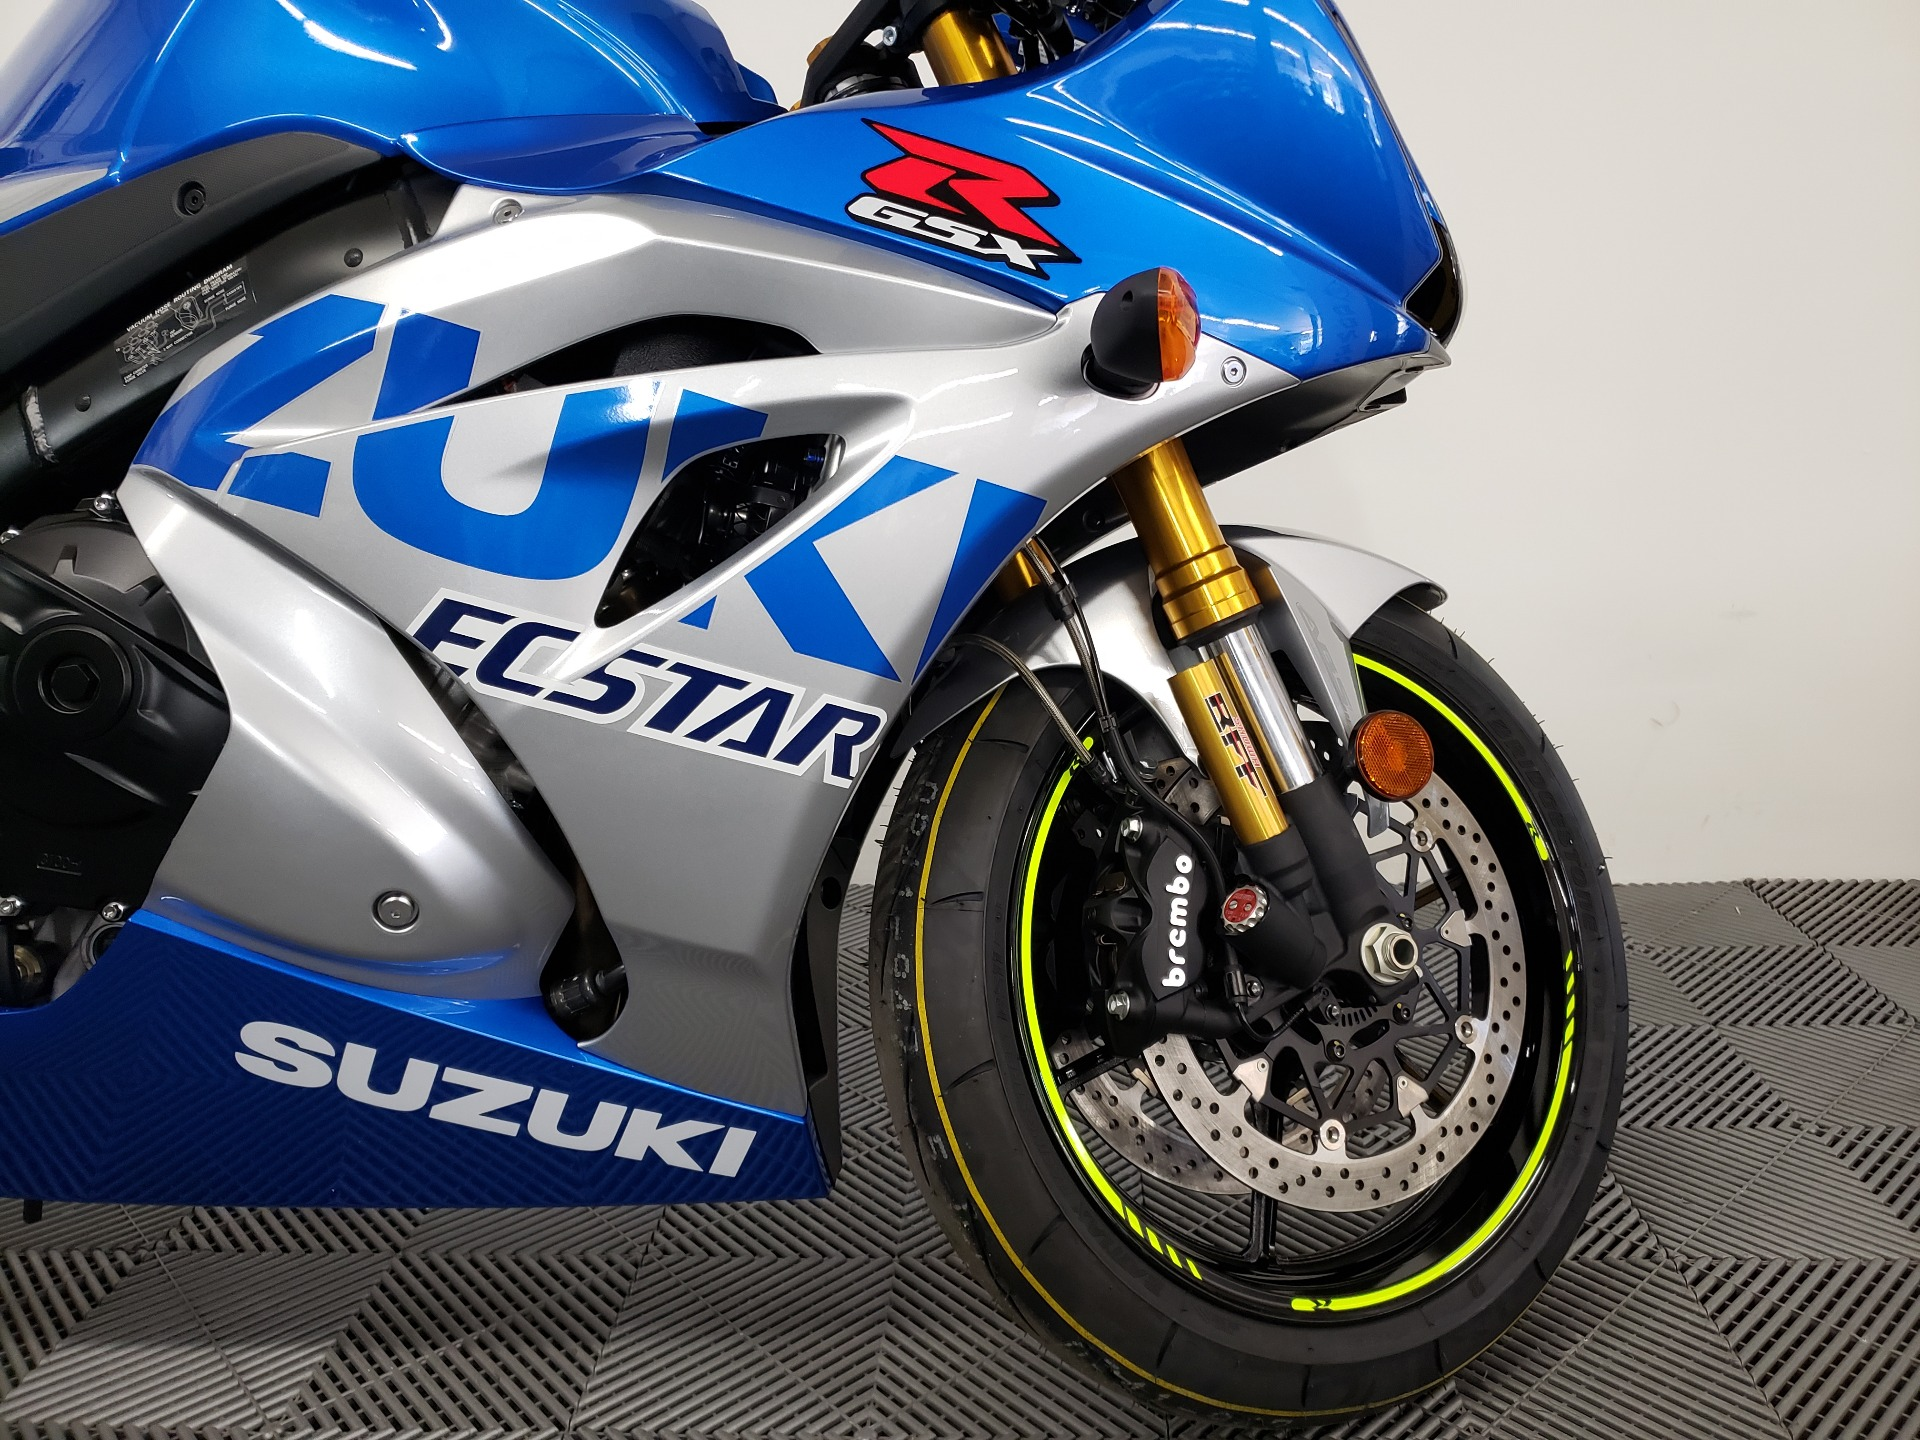 2021 Suzuki GSX-R1000R 100th Anniversary Edition in Van Nuys, California - Photo 6